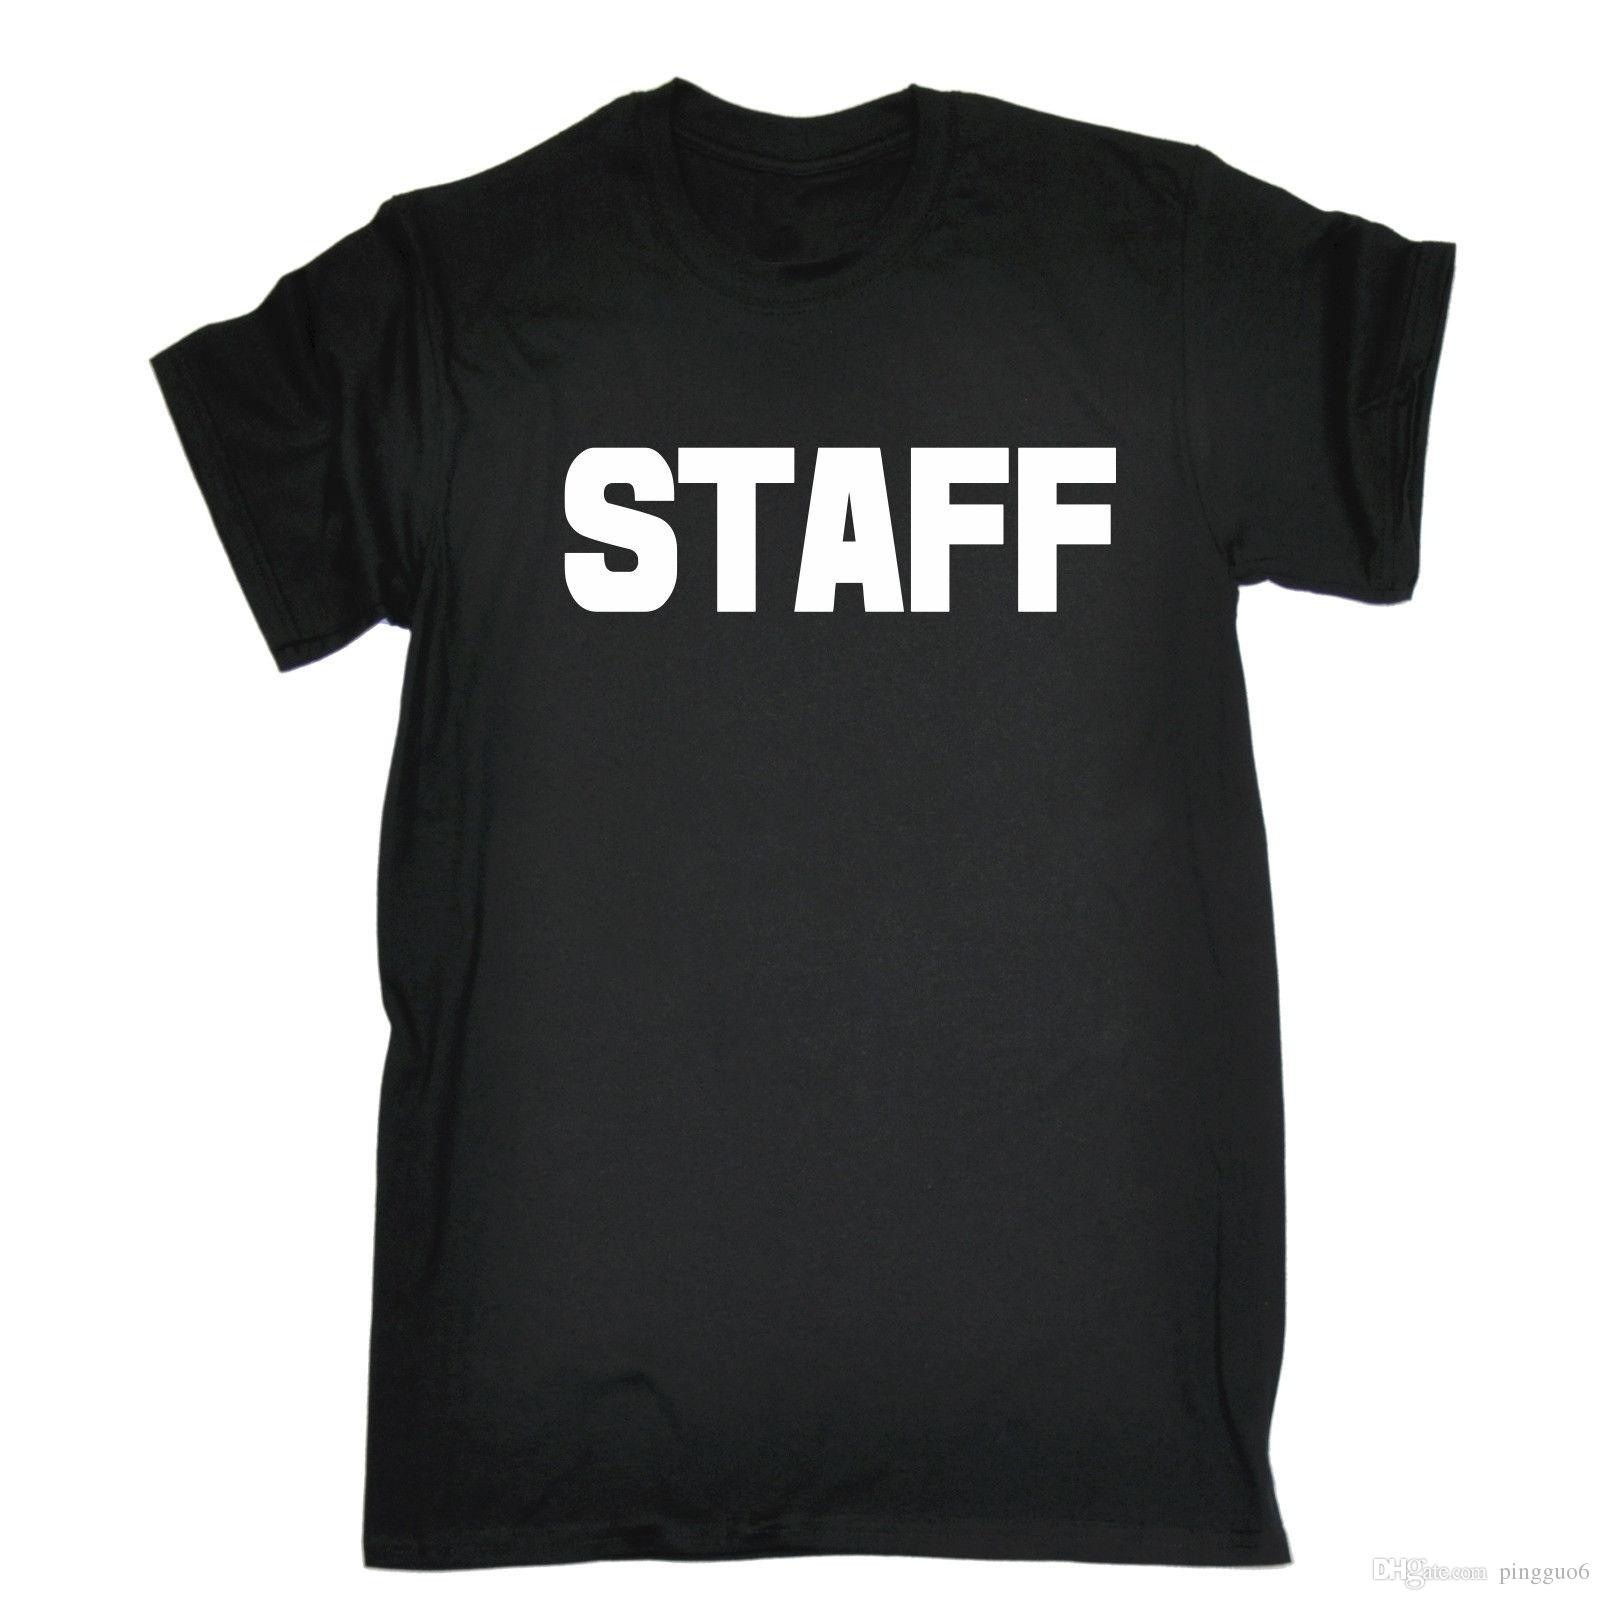 STAFF LARGE FRONT & BACK T-SHIRT Work Uniform Workwear Bar Pub Birthday Gift Summer Short Sleeves Cotton T Shirt Fashion